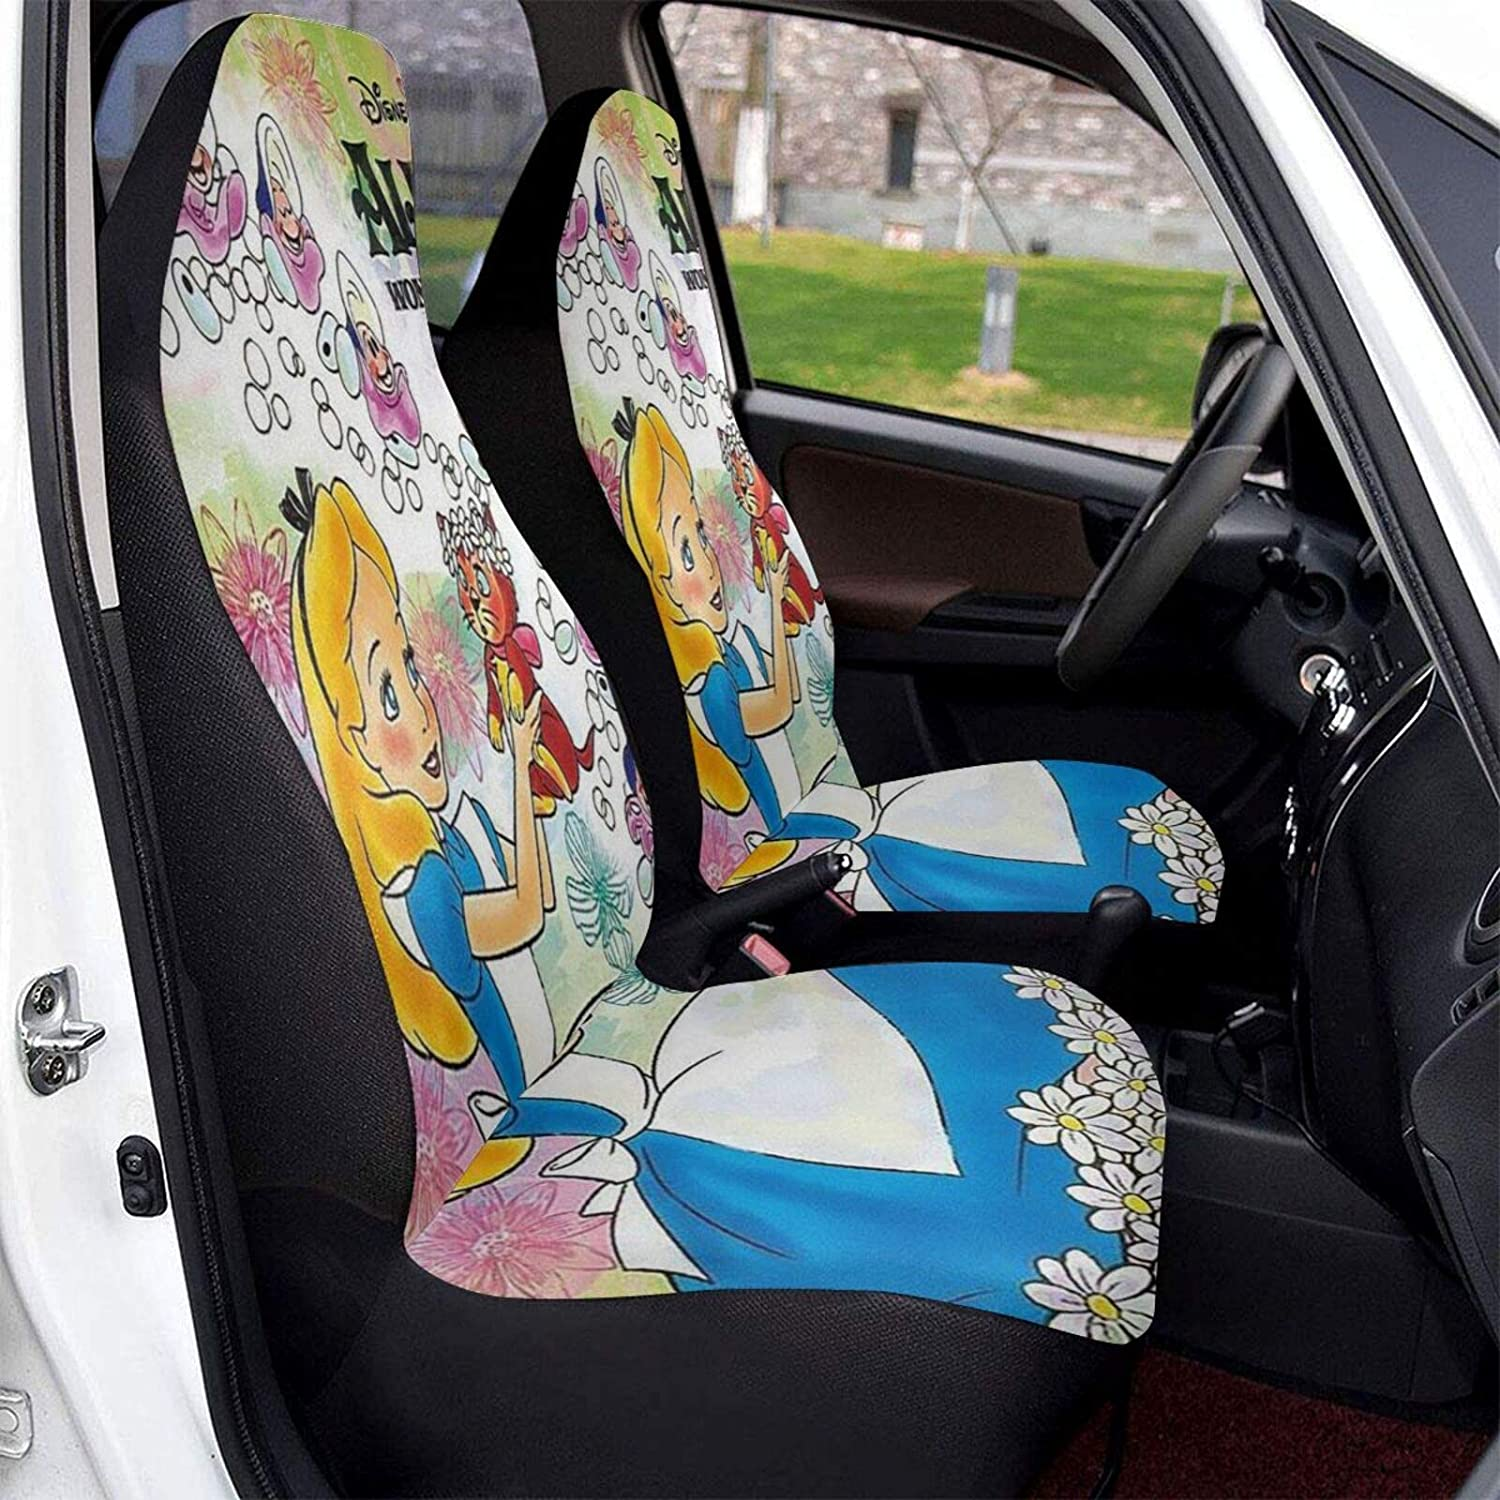 Alice in Wonderland Front Seat Vehicle Washable Covers Finally resale start Seasonal Wrap Introduction Durable S